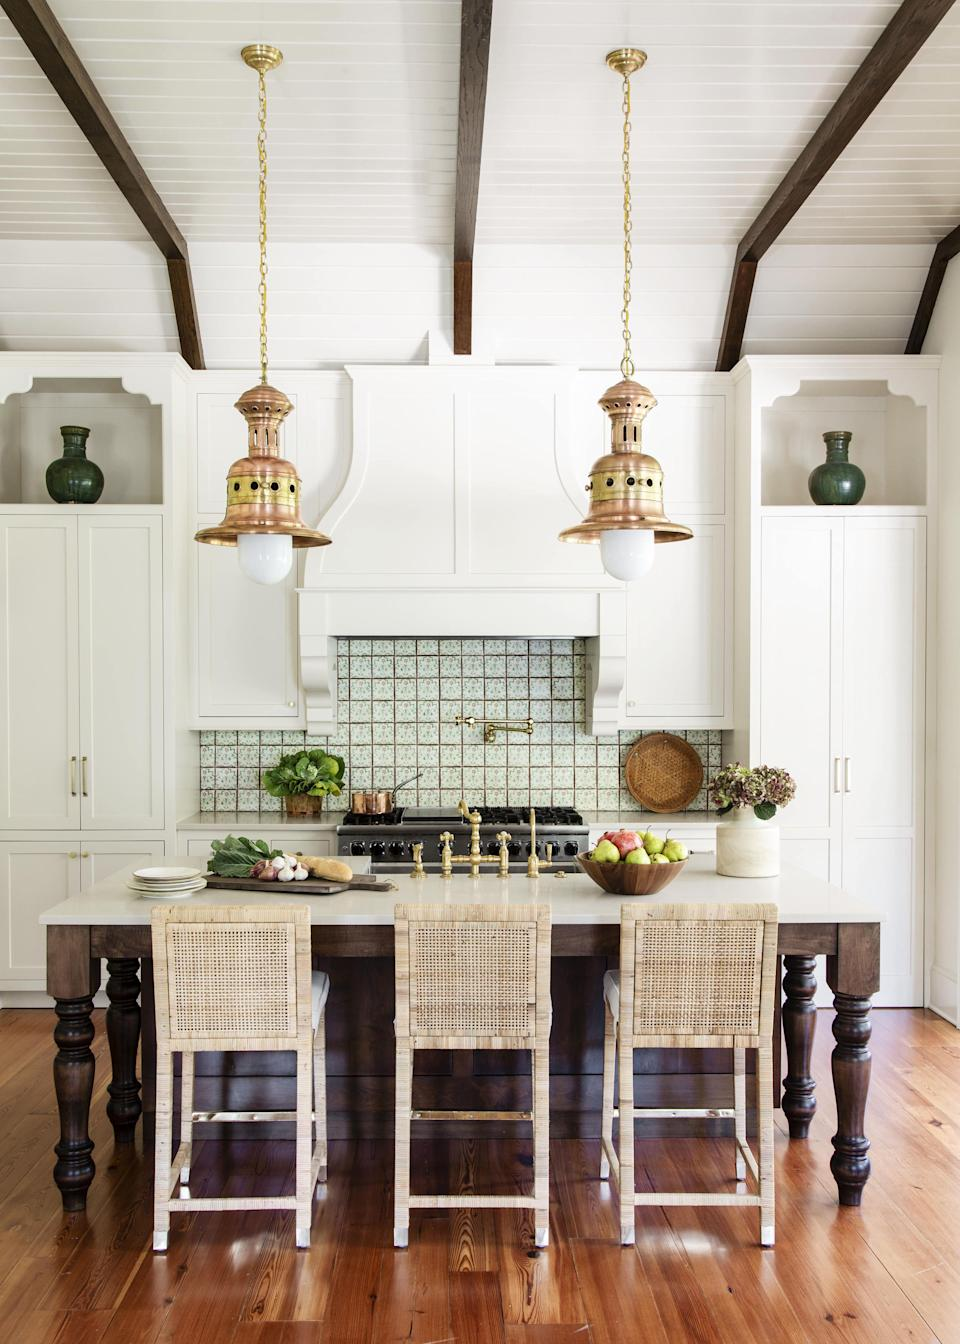 "<p>There are few better ways to give your kitchen a simple yet impactful upgrade than new light fixtures. Designers anticipate investment in low-lift projects like hardware, light fixtures, and finishes will be a major <a href=""https://www.veranda.com/decorating-ideas/g35046179/kitchen-trends-2021/"" rel=""nofollow noopener"" target=""_blank"" data-ylk=""slk:kitchen design trend"" class=""link rapid-noclick-resp"">kitchen design trend </a>this year, which can make your kitchen feel brand-new without living in a construction zone for months. Lighting is also especially important in the<a href=""https://www.veranda.com/decorating-ideas/g34955481/modern-kitchens/"" rel=""nofollow noopener"" target=""_blank"" data-ylk=""slk:modern kitchen"" class=""link rapid-noclick-resp""> modern kitchen</a>, as this space has truly become the heart of the home again: it serves as a place to catch up on email, finish homework, call a friend, mix up a cocktail, oh, and make most of the week's meals. <a href=""https://www.veranda.com/home-decorators/a1081/lighting-mistakes/"" rel=""nofollow noopener"" target=""_blank"" data-ylk=""slk:Choosing the right lighting"" class=""link rapid-noclick-resp"">Choosing the right lighting</a> is essential not only making your kitchen more beautiful but to set a cozy and warm mood that makes your late-night baking ventures and early morning coffee rituals feel more luxurious and inviting</p><p>The following kitchen light fixture ideas offer some of our favorite ways to zhush up your lighting game from some of the world's best designers. Just be sure to invest in the right bulbs to ensure your space feels happy and calming instead of sterile and overly bright!</p>"